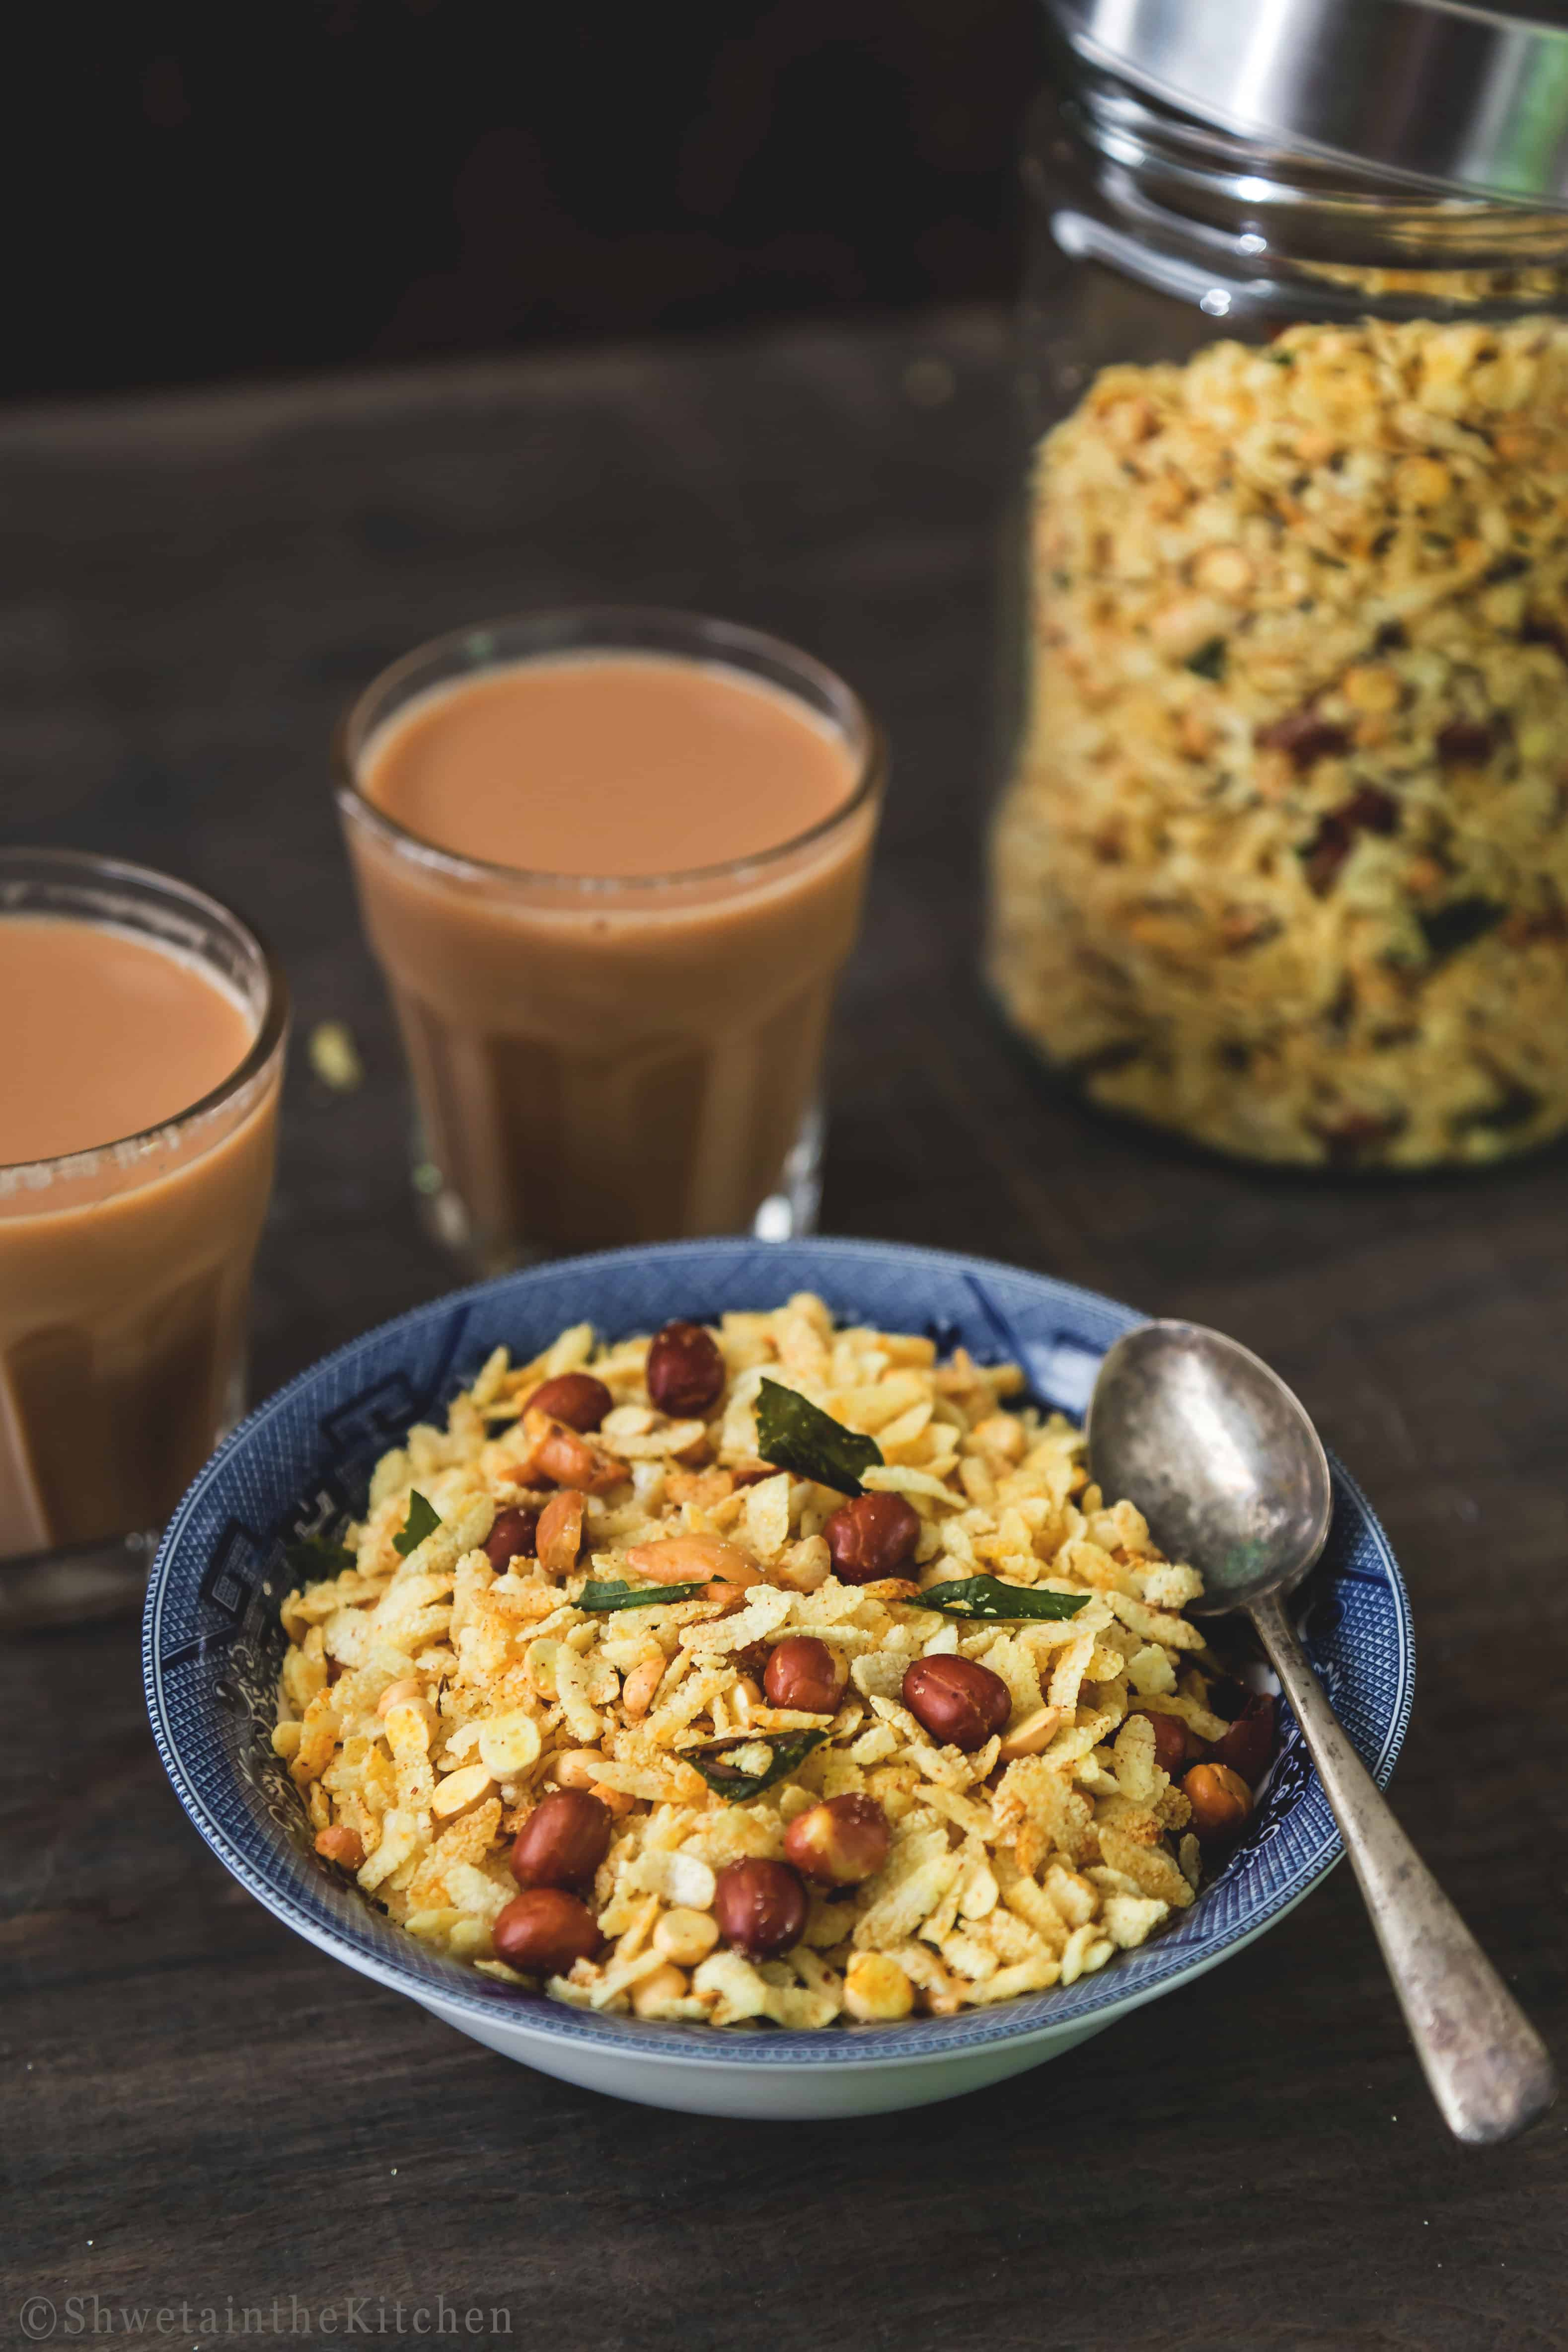 Poha Chivda in a bowl with spoon and 2 cups of chai